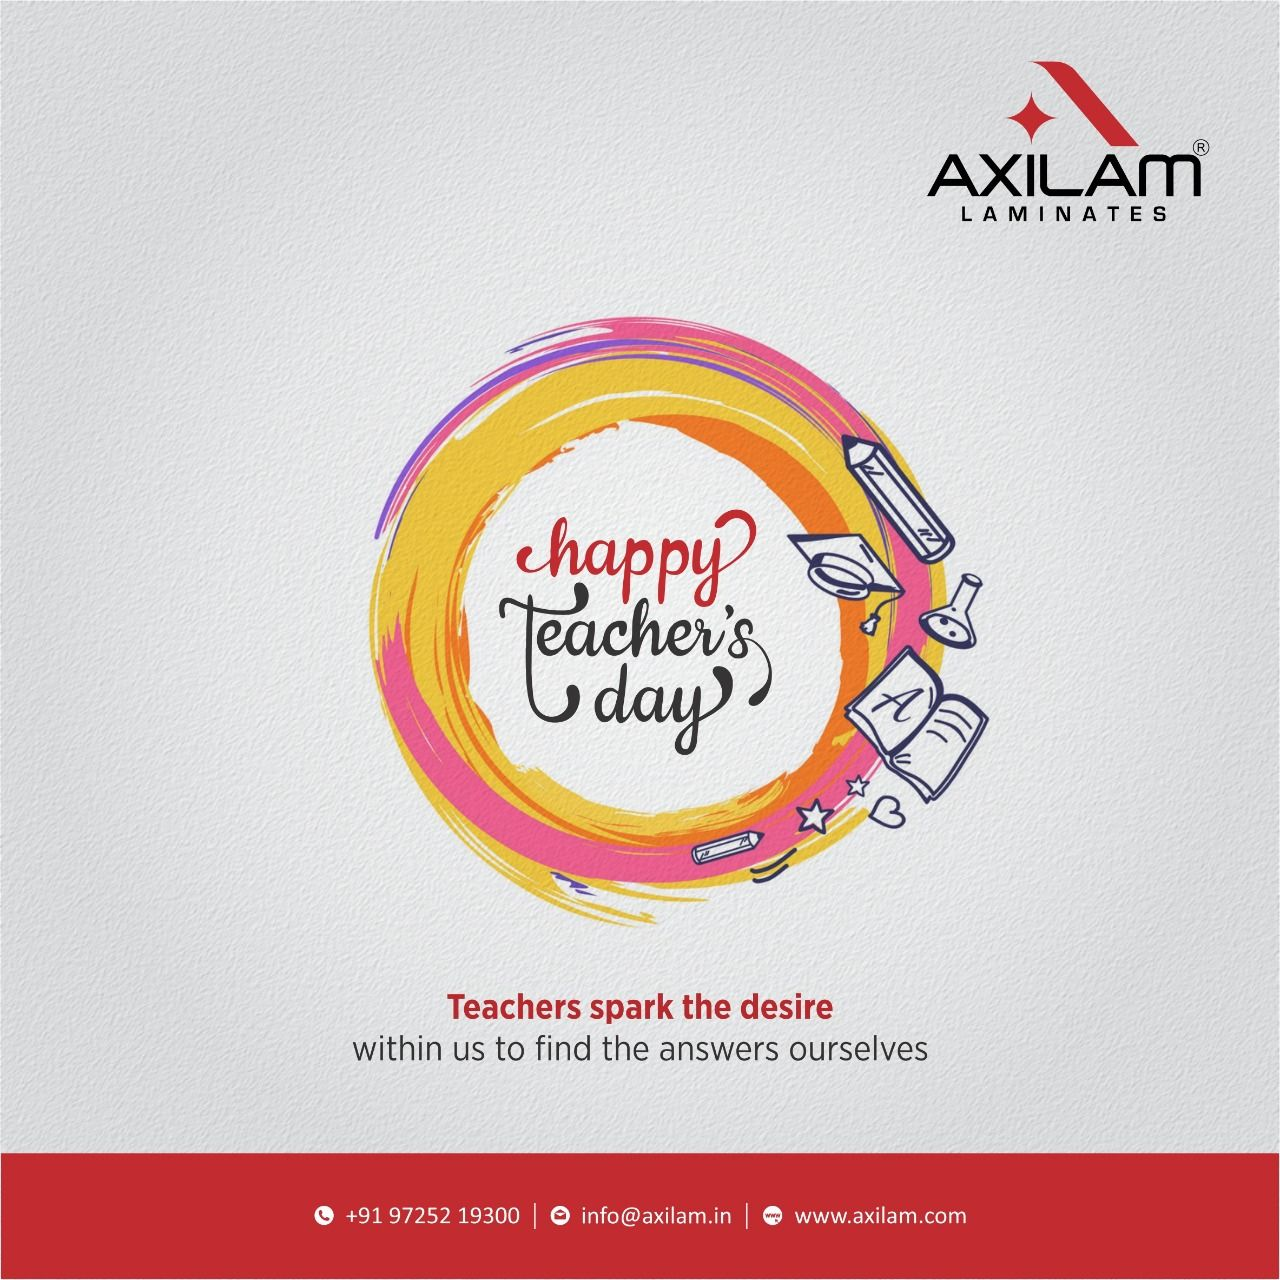 Teachers Spark The Desire Within Us To Find The Answers Ourselves Happy Teachers Day Axilam Laminates Luxu Happy Teachers Day Color Quotes Teachers Day